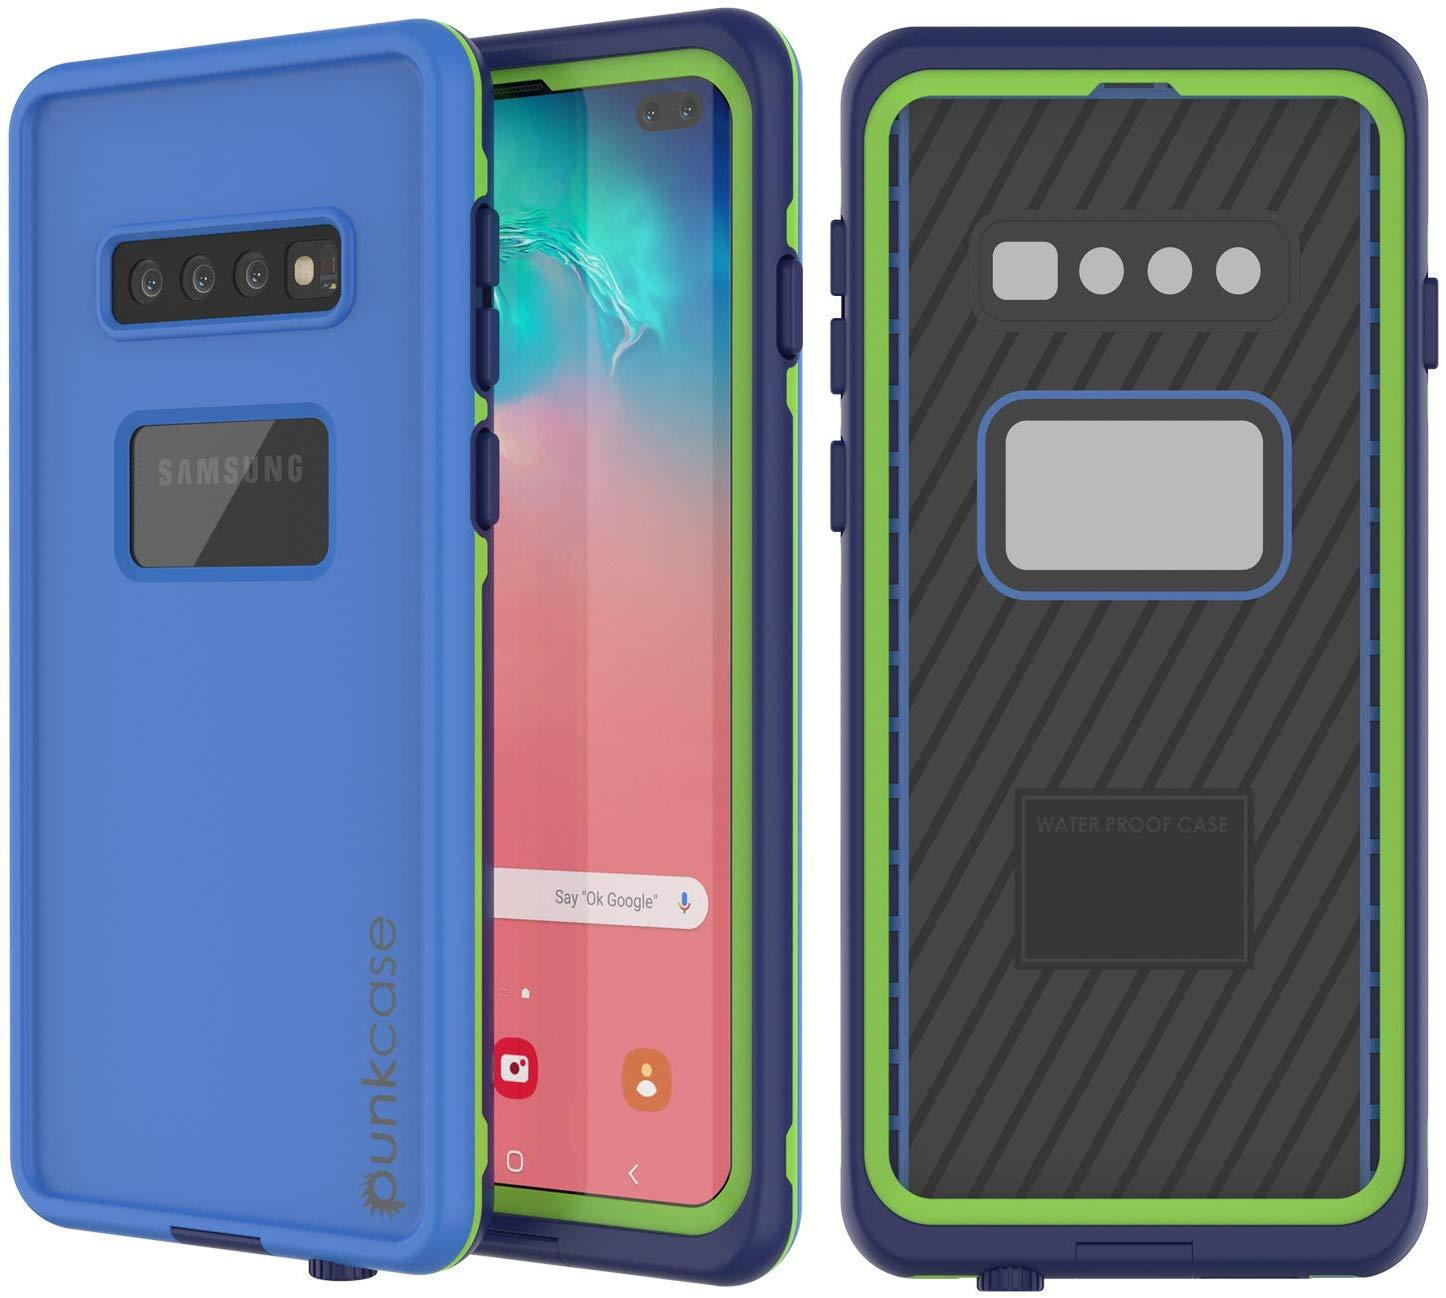 Punkcase S10+ Plus Waterproof Case [Aqua Series] Armor Cover [Blue]